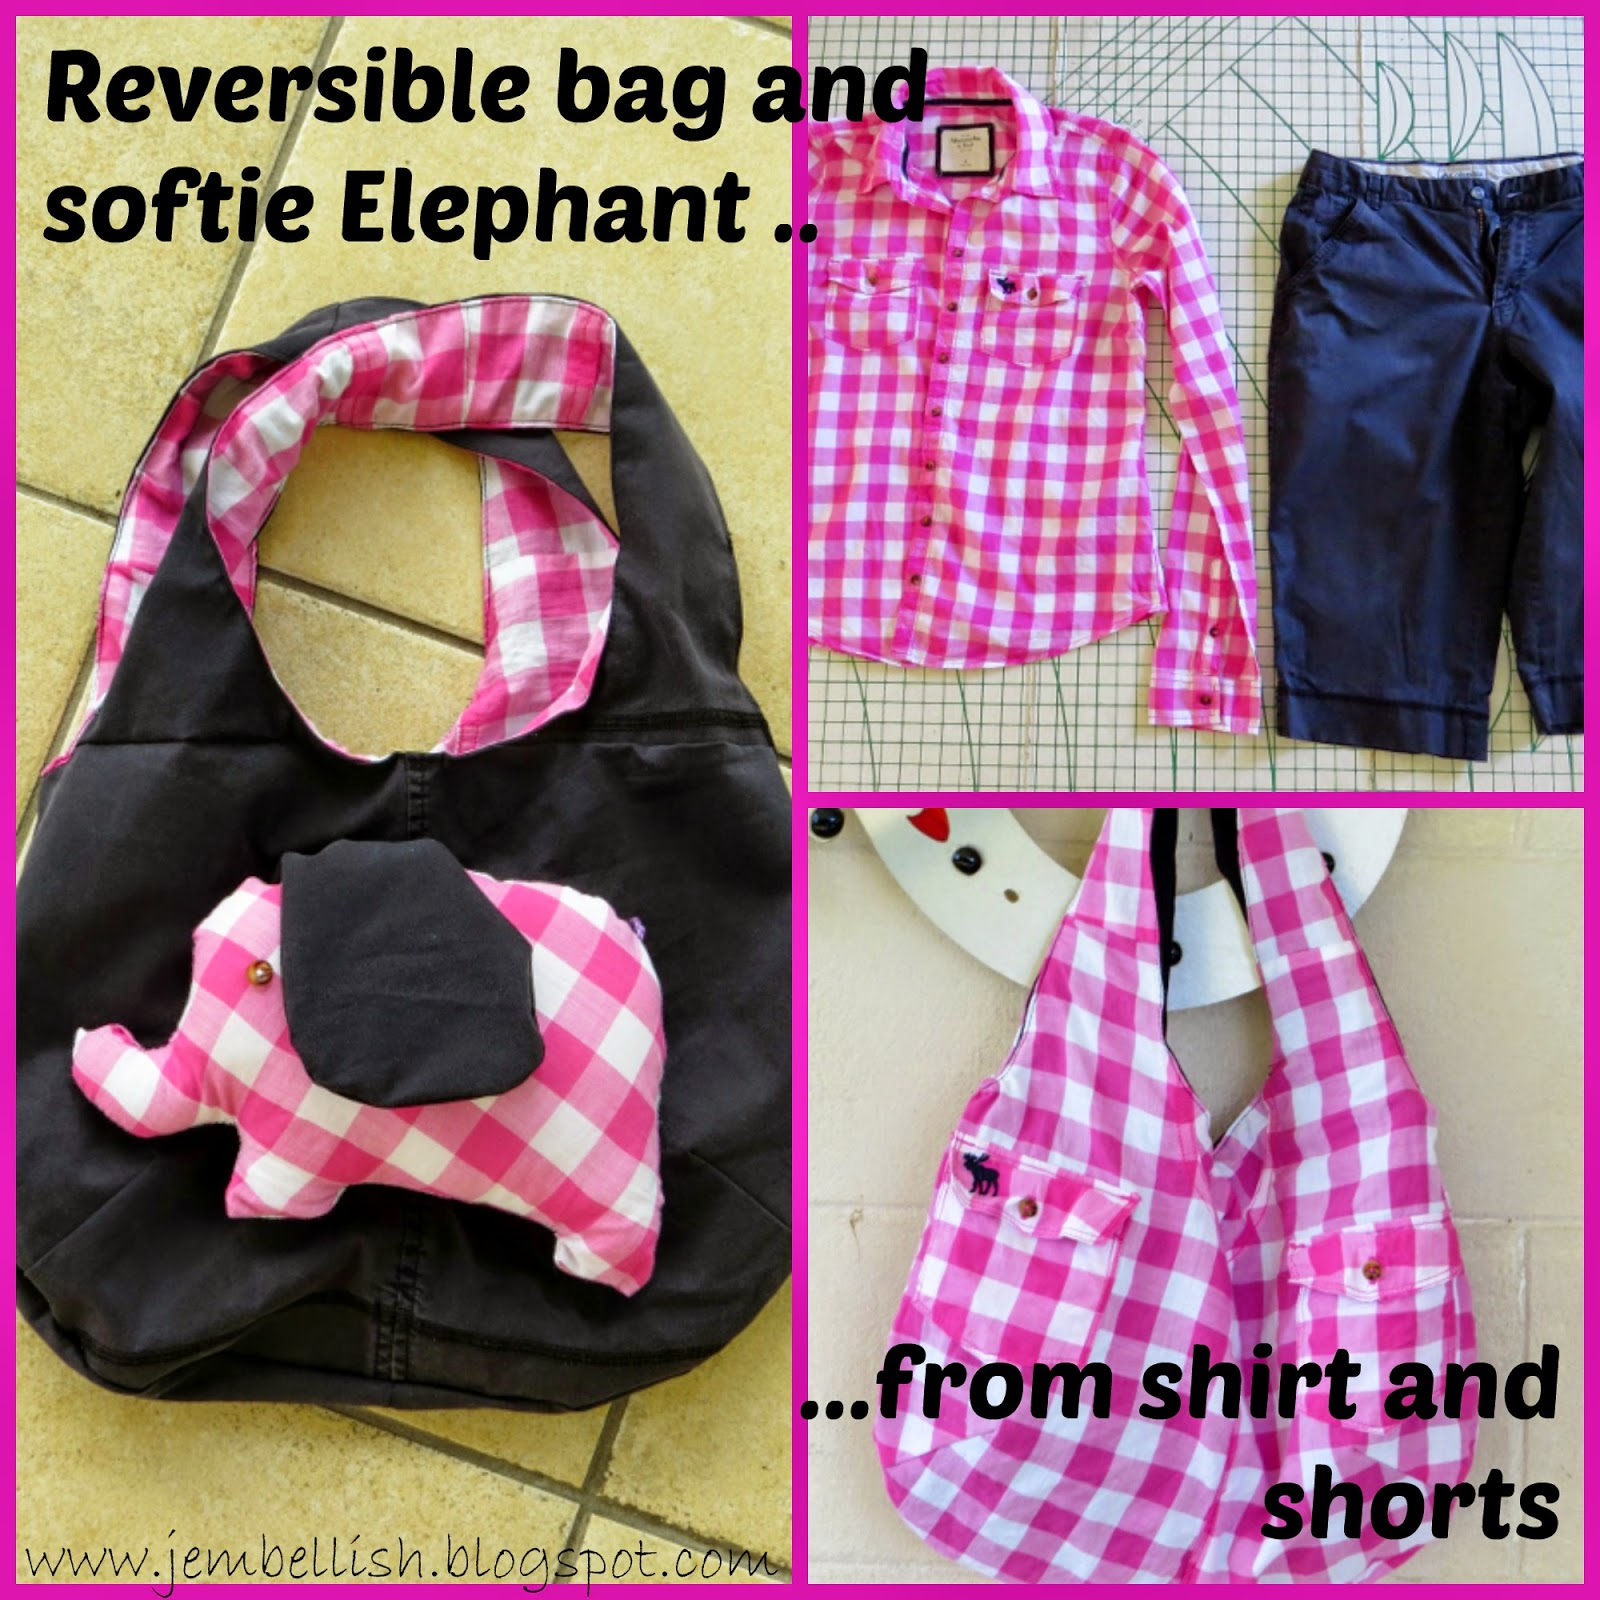 Bag and Elephant from shorts and shirt